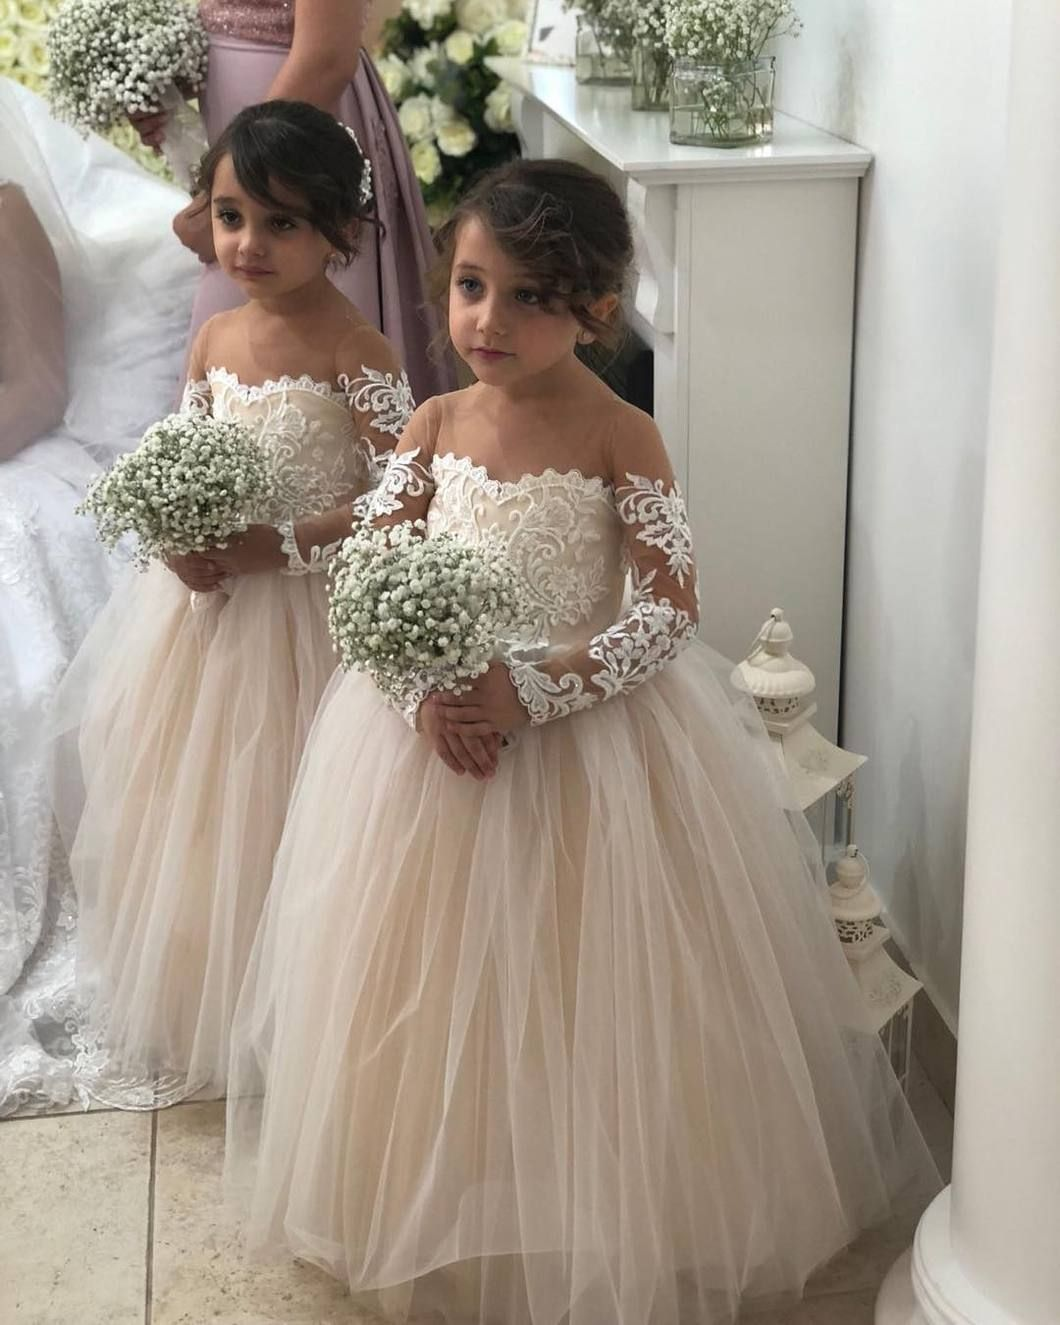 329ca4fce640 Beautiful tulle flower girl dress that is floor length, has off the  shoulder long lace sleeves, and a ball gown silhouette.